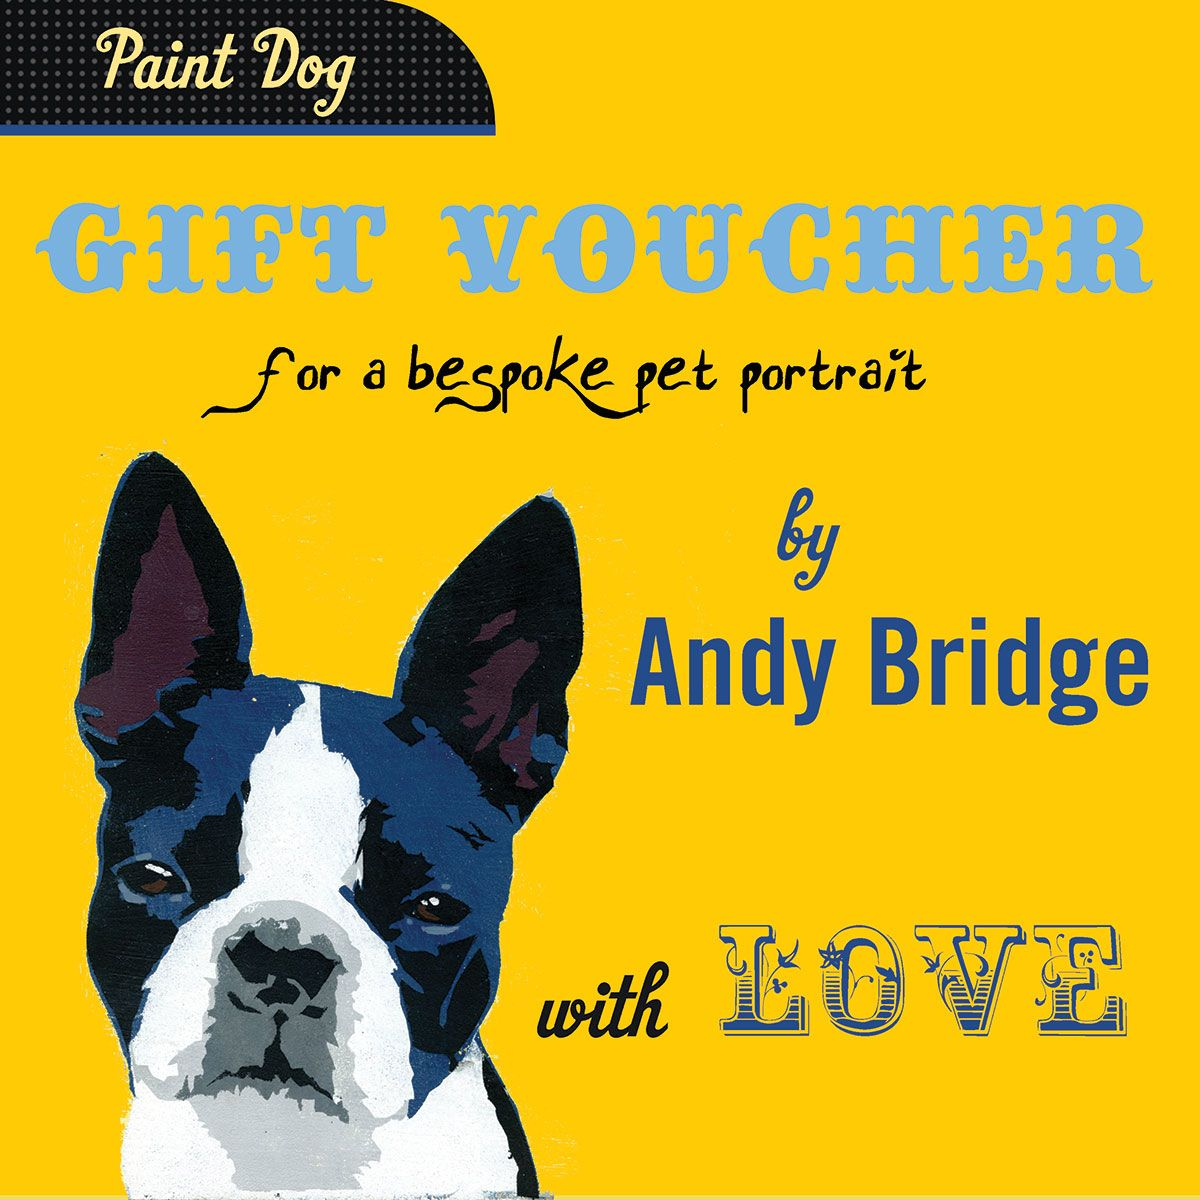 Gift ideas for pets - Christmas gift guides